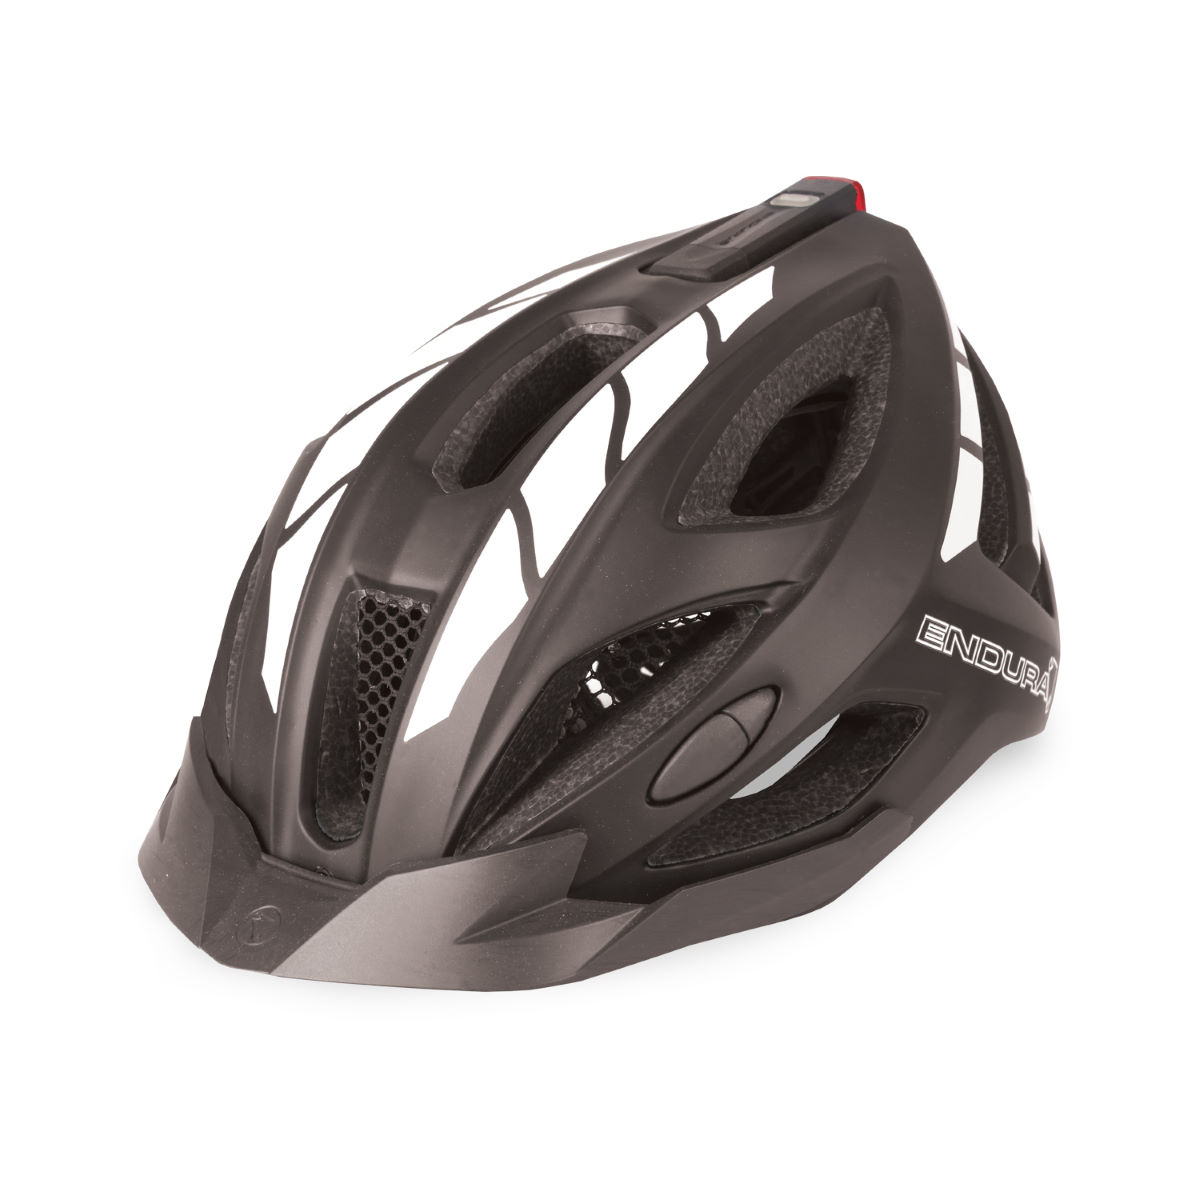 Casque Endura Luminite - Casques